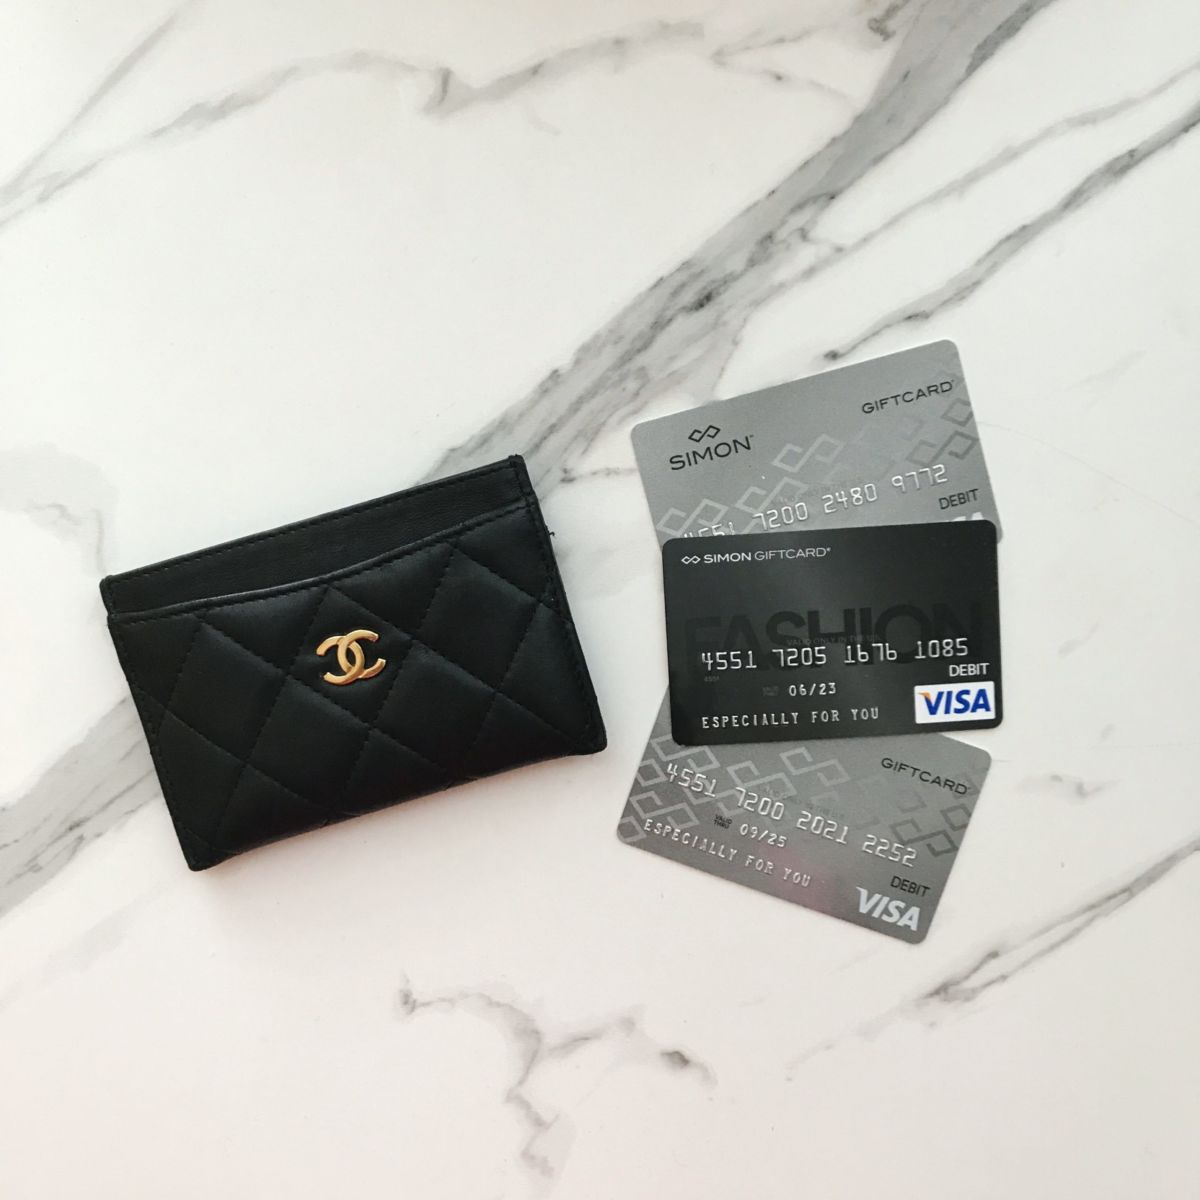 Simon gift cards are the same as cash at all properties!